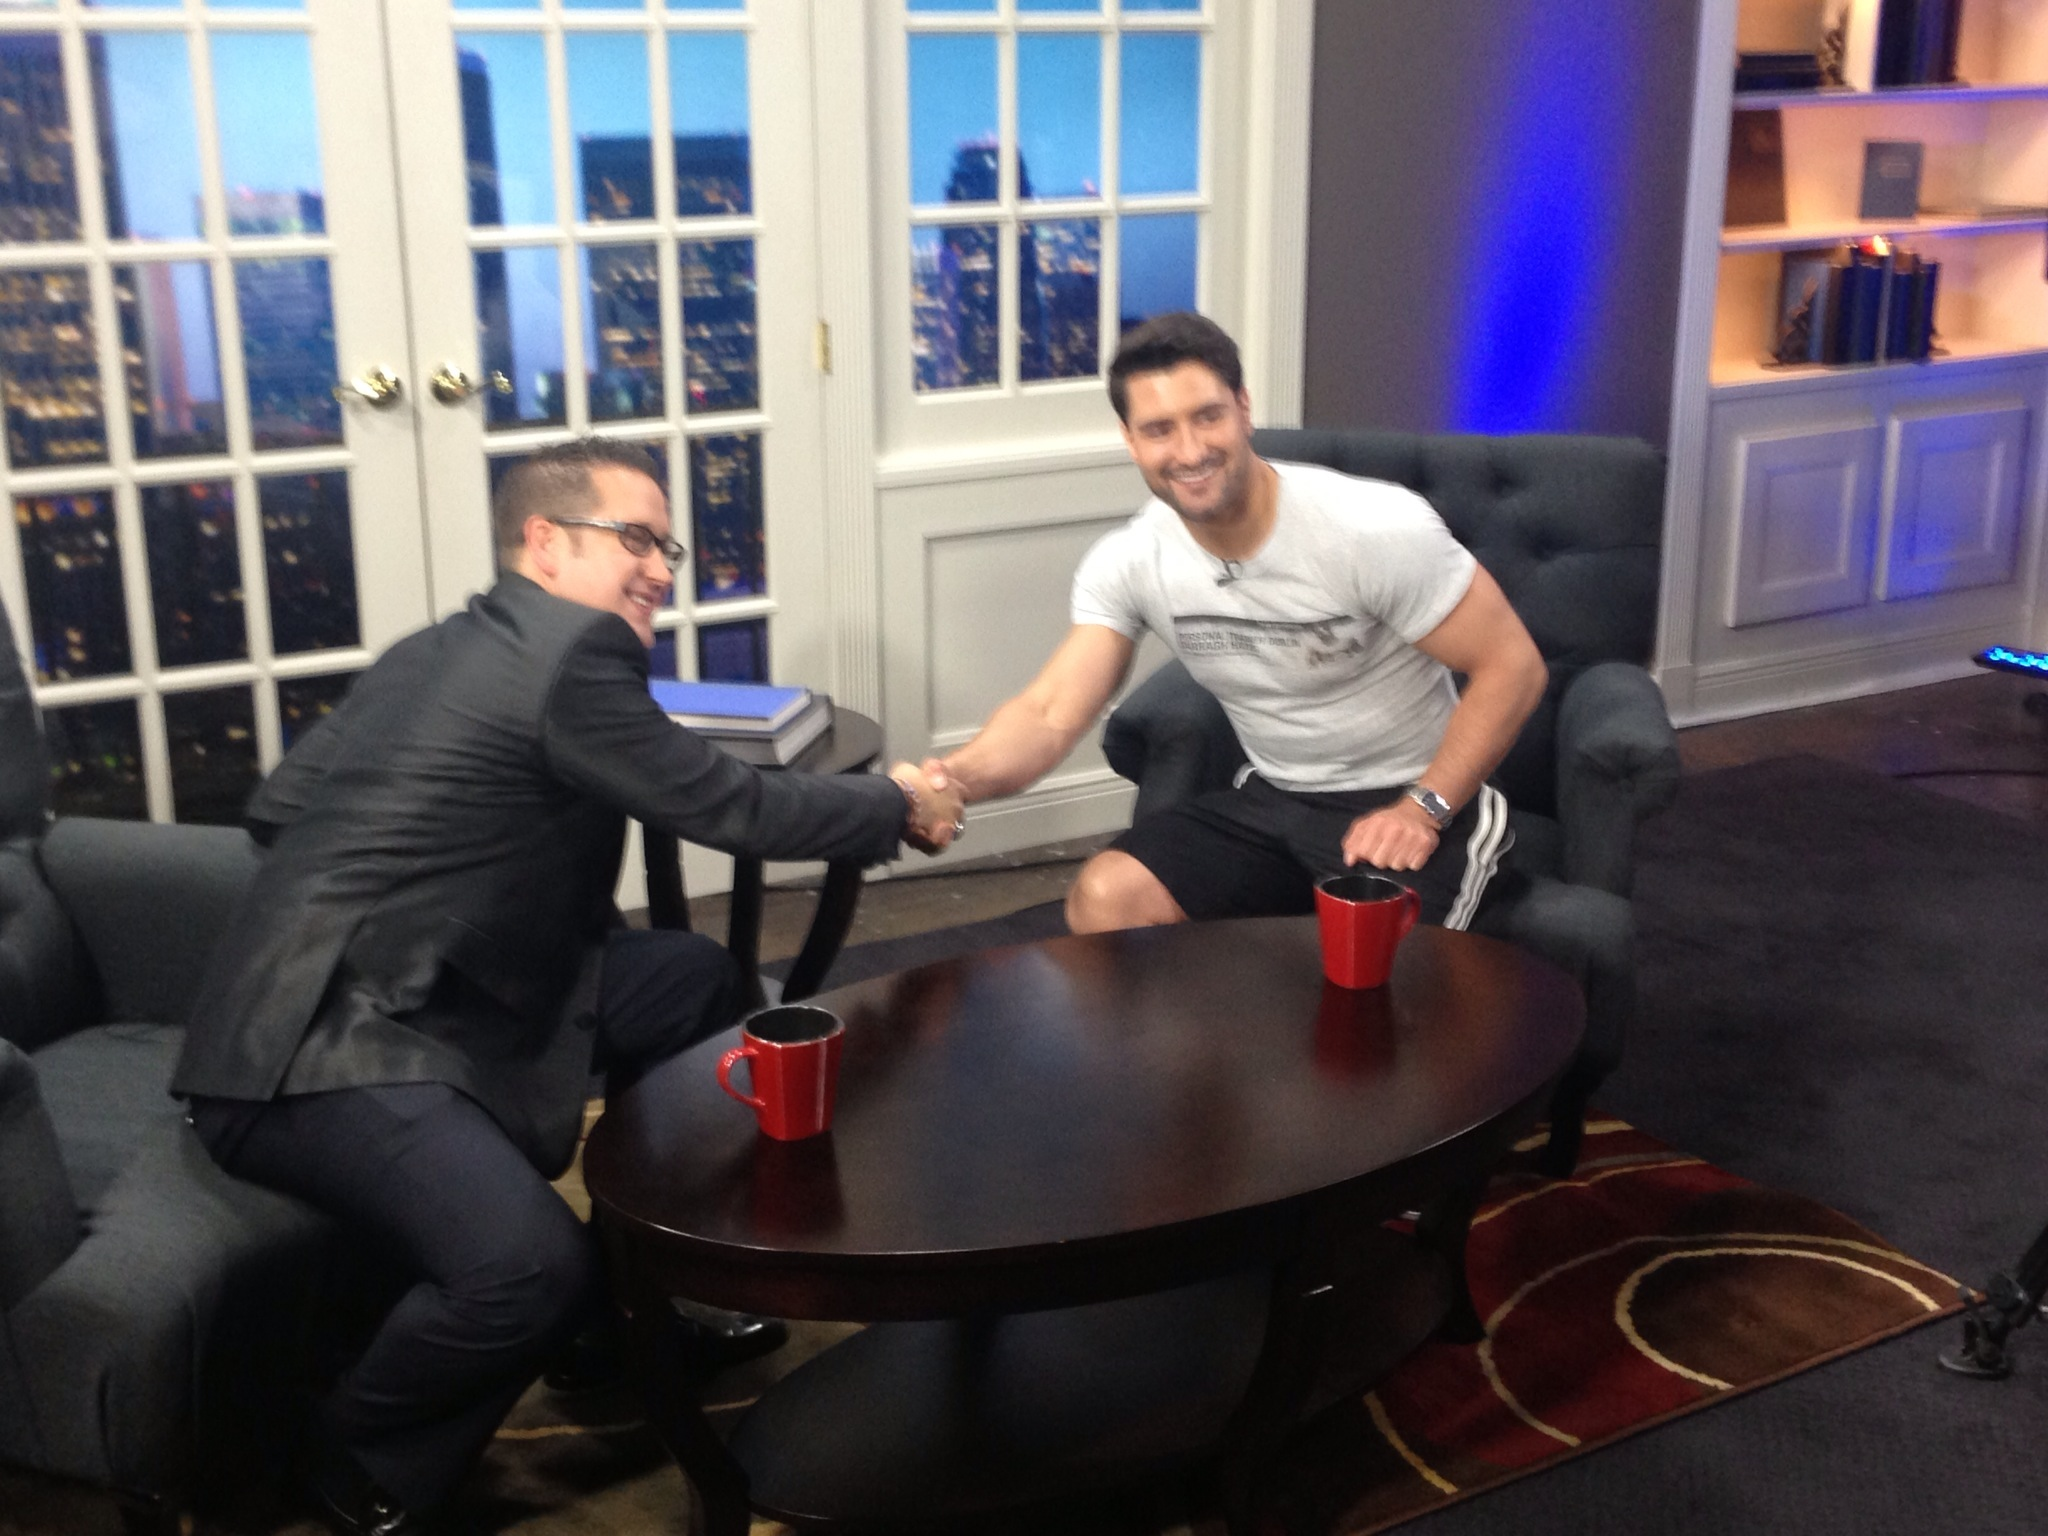 Darragh Hayes Fox TV interview in the USA